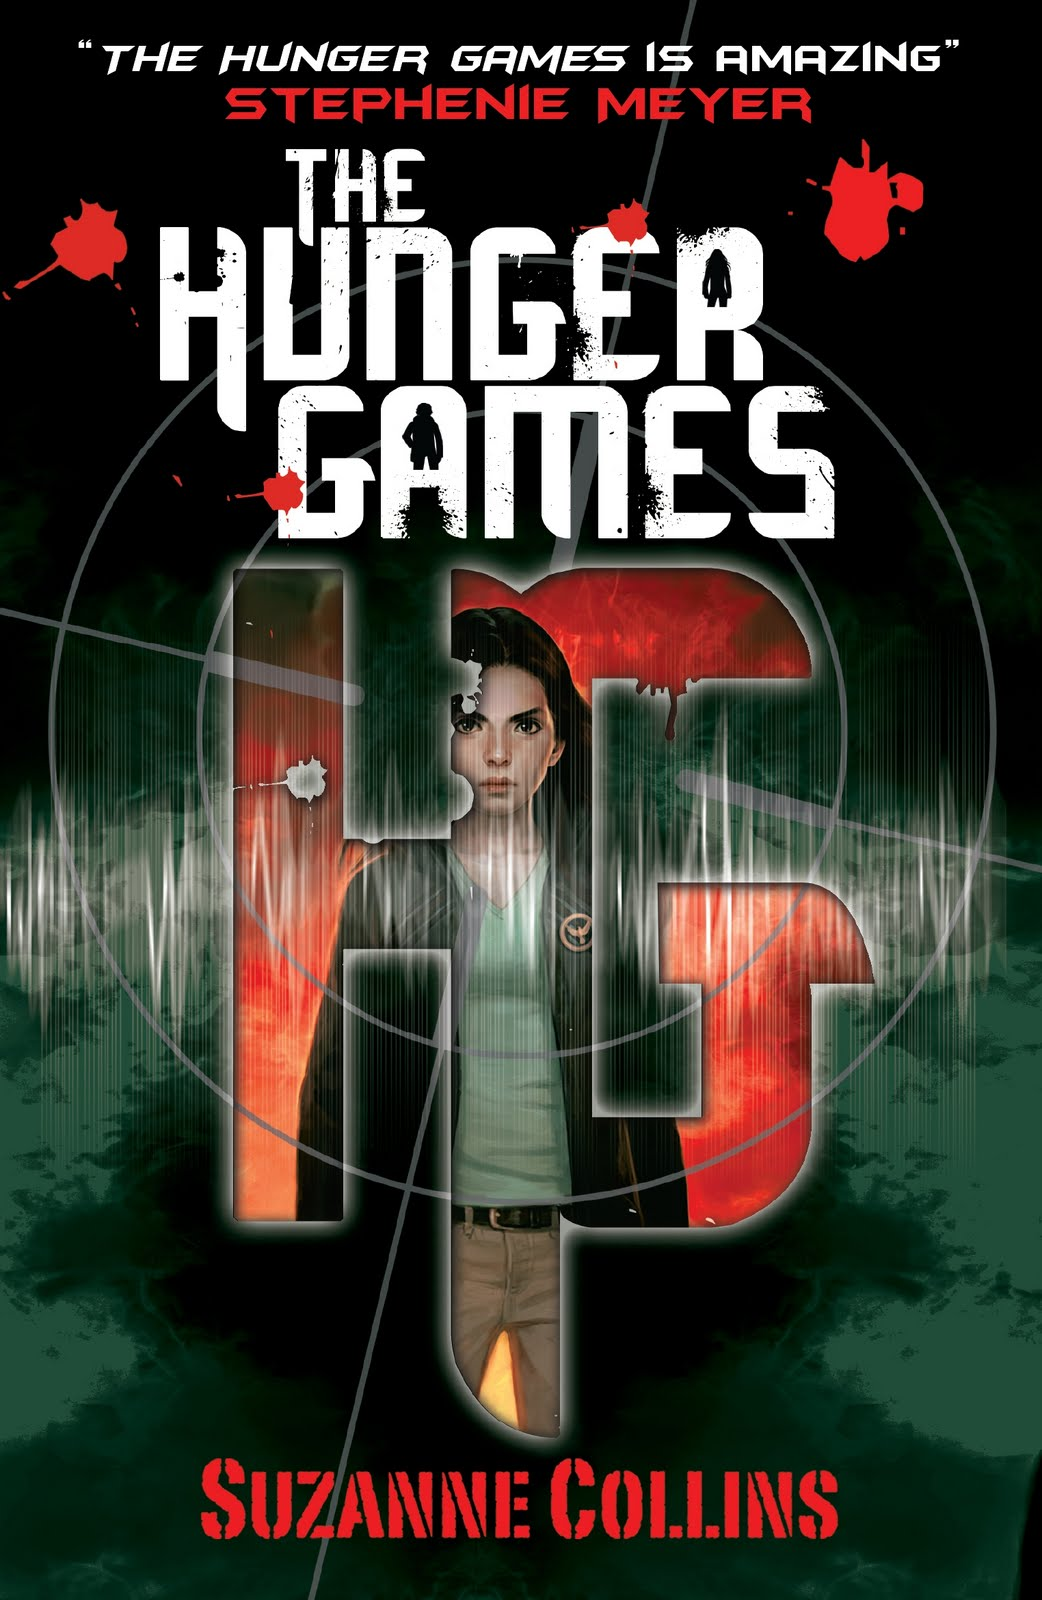 SUZANNE COLLINS THE HUNGER GAMES PDF DOWNLOAD